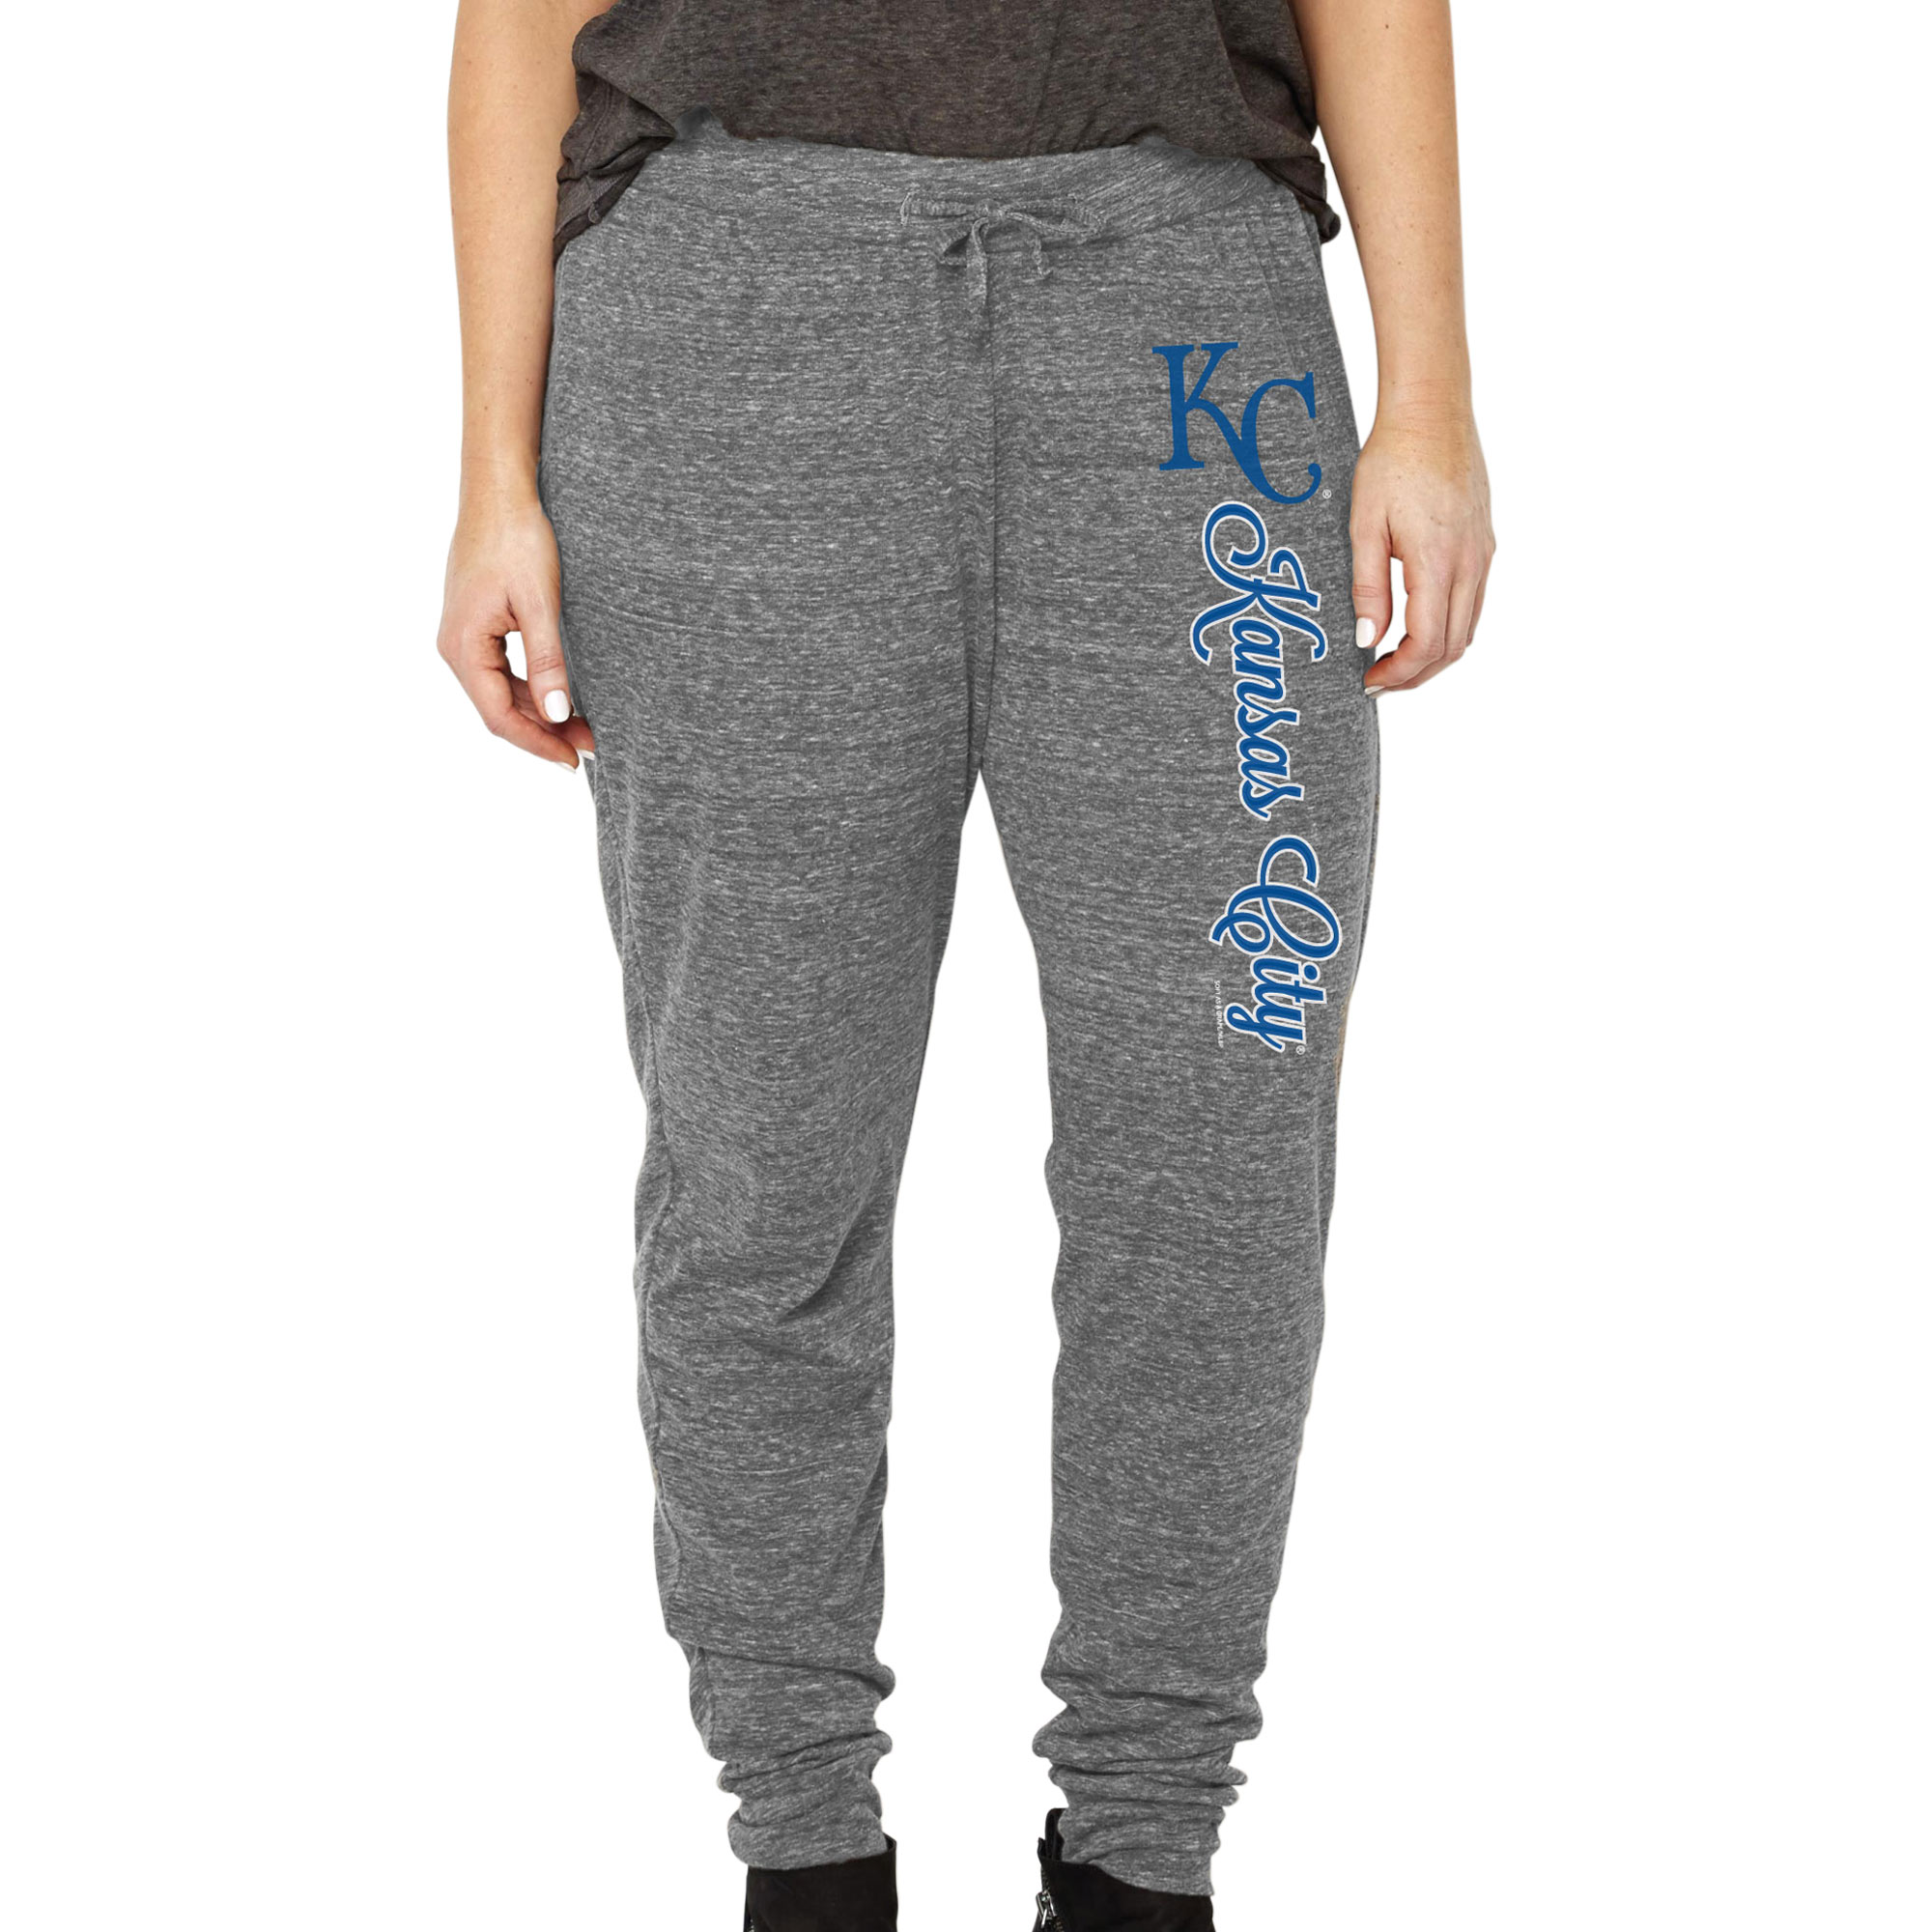 Kansas City Royals Soft as a Grape Women's Plus Size Jogger Pants - Heathered Gray